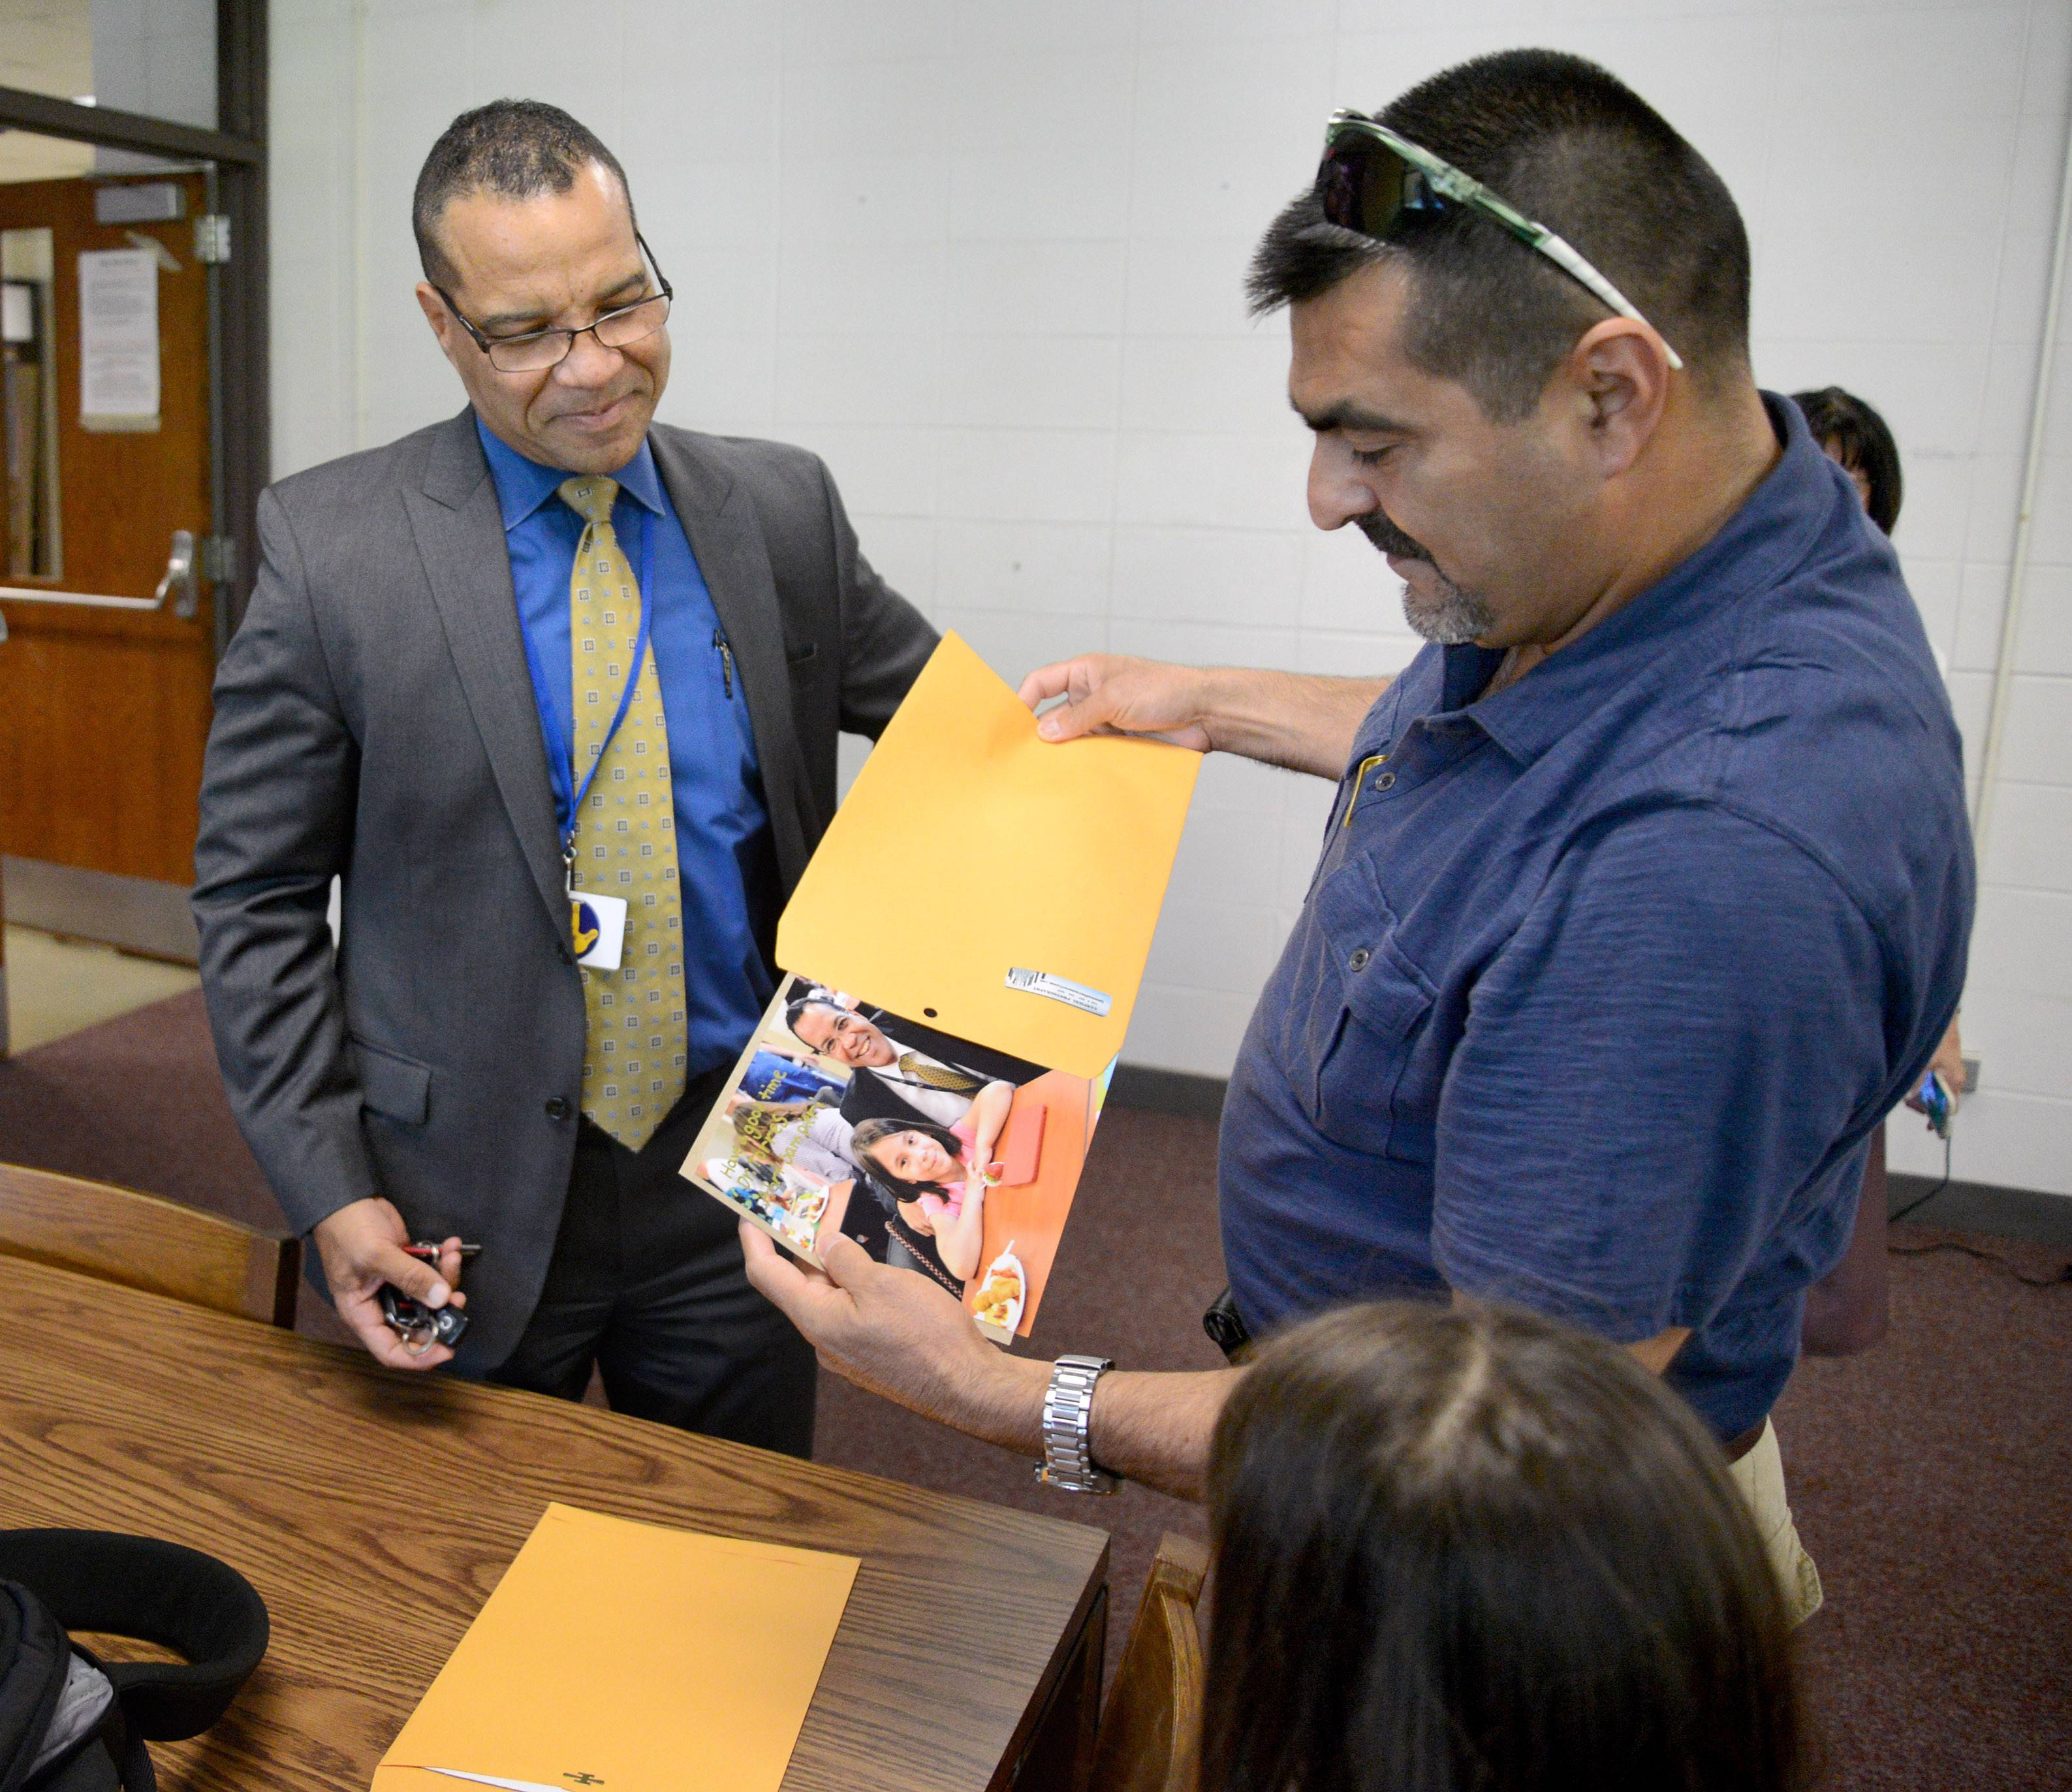 Guillermo Sampieri of Elgin pulls out a photo taken last May with Elgin Area School District U-46 Superintendent Jose Torres and his daughter, Abrianna, 8, right, for Torres to sign for her at his farewell reception. Sampieri brought a second copy for Torres to keep.